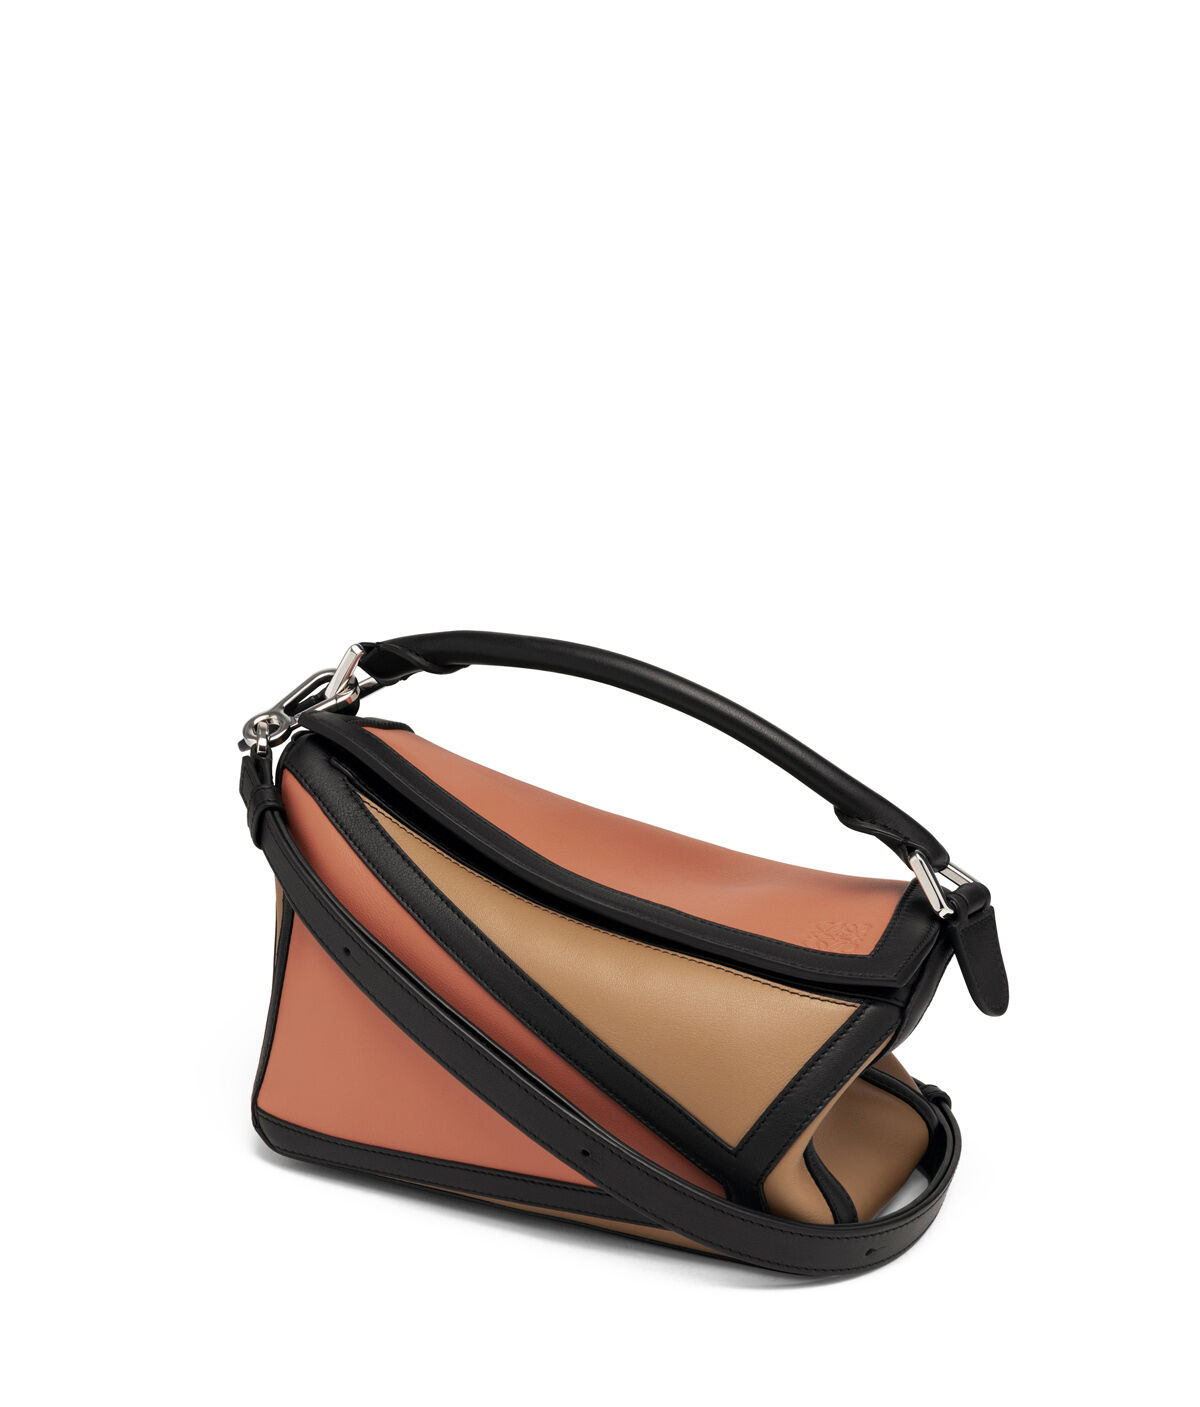 LOEWE Bolso Puzzle Graphic Pequeño Rosa Tulipan/Mocca all